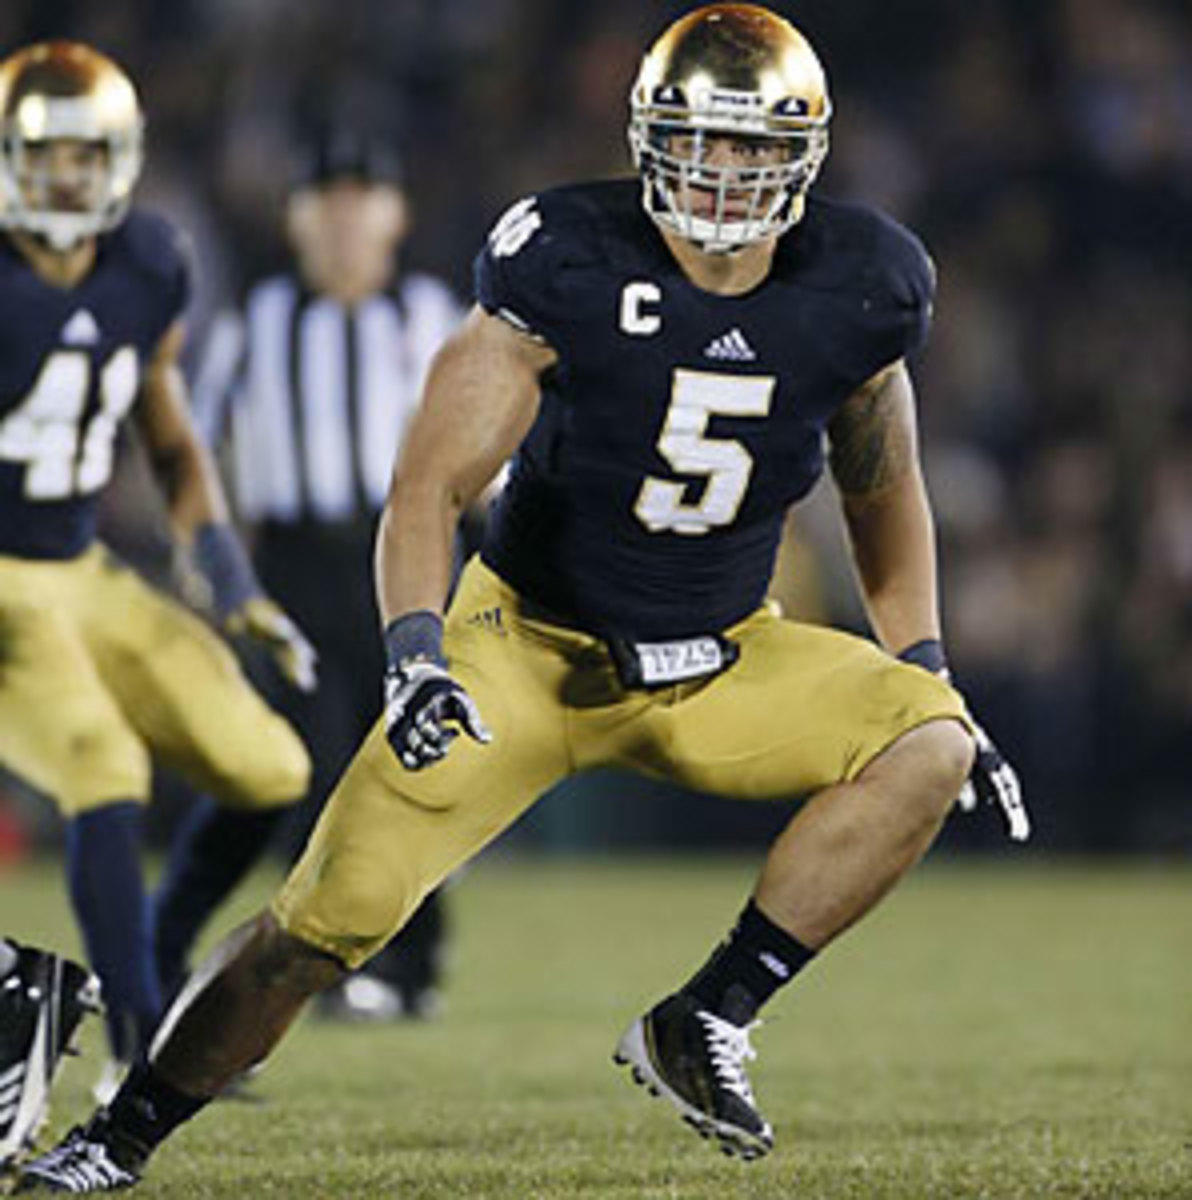 Story of Manti Te'o girlfriend's death apparently hoax ...